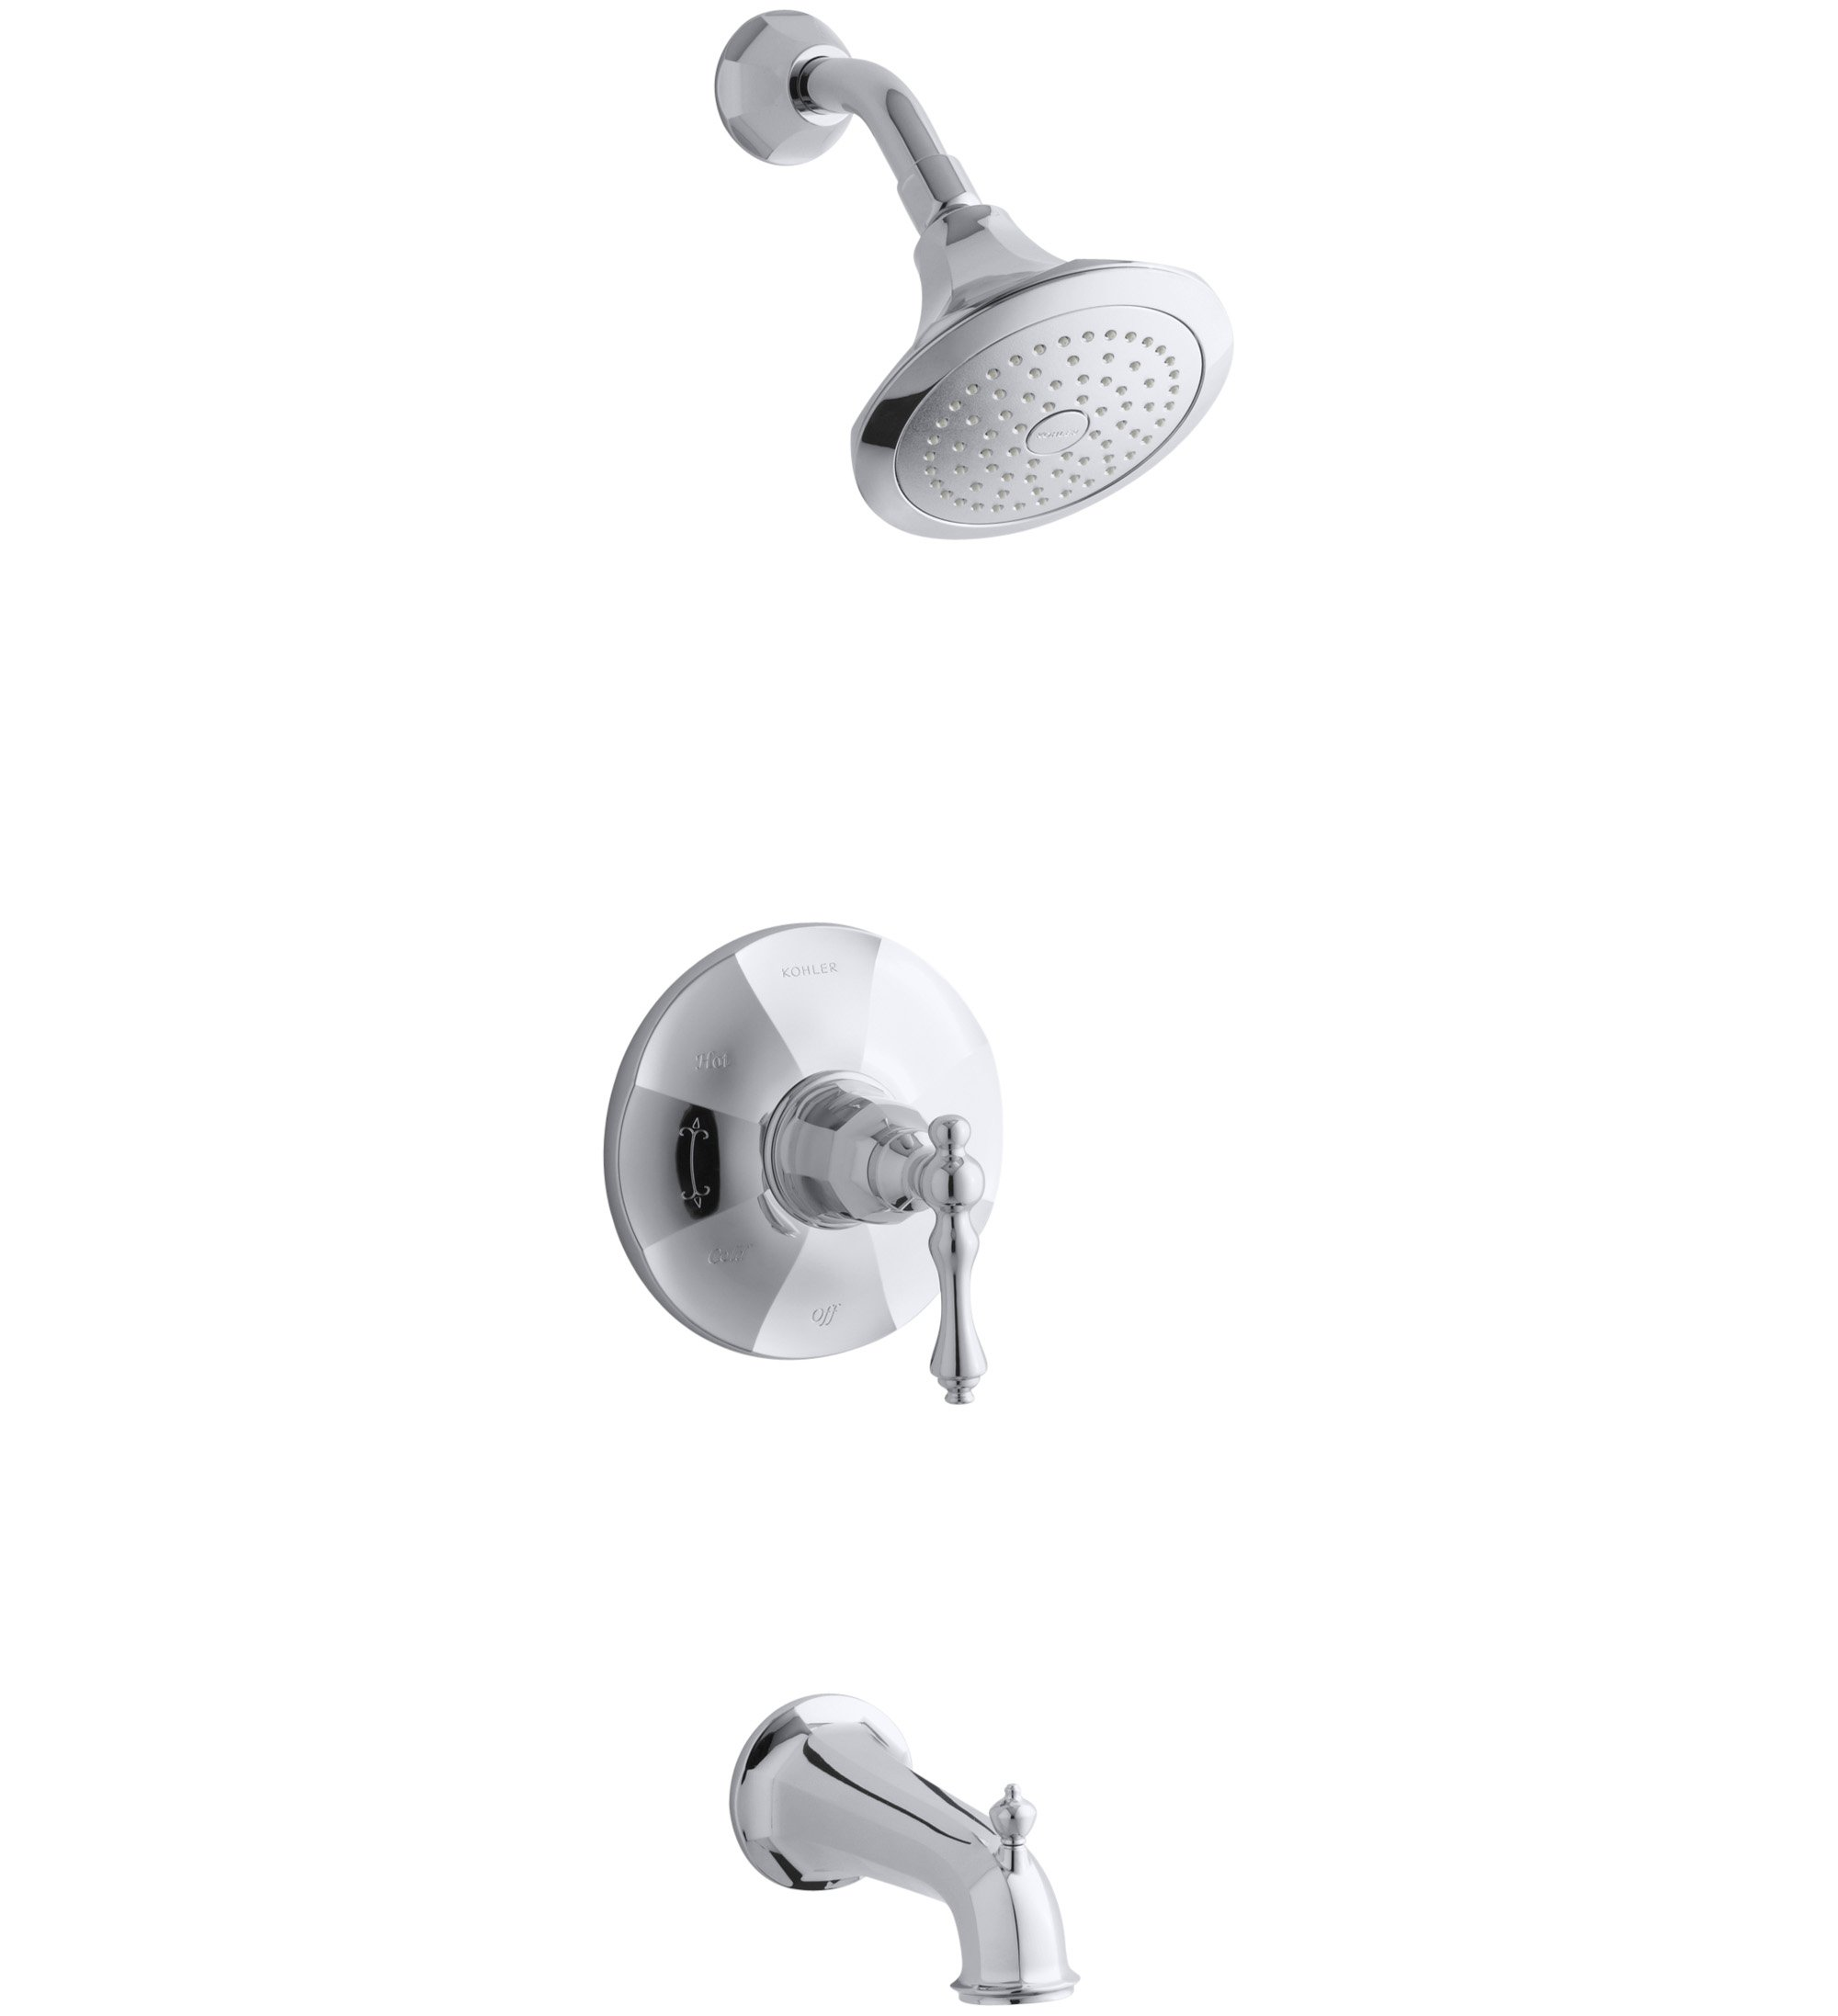 Kohler TS13492-4E-CP Rite-Temp Bath & Shower Valve Trim with Lever Handle, Spout & 2.0 Gpm Showerhead by Kohler